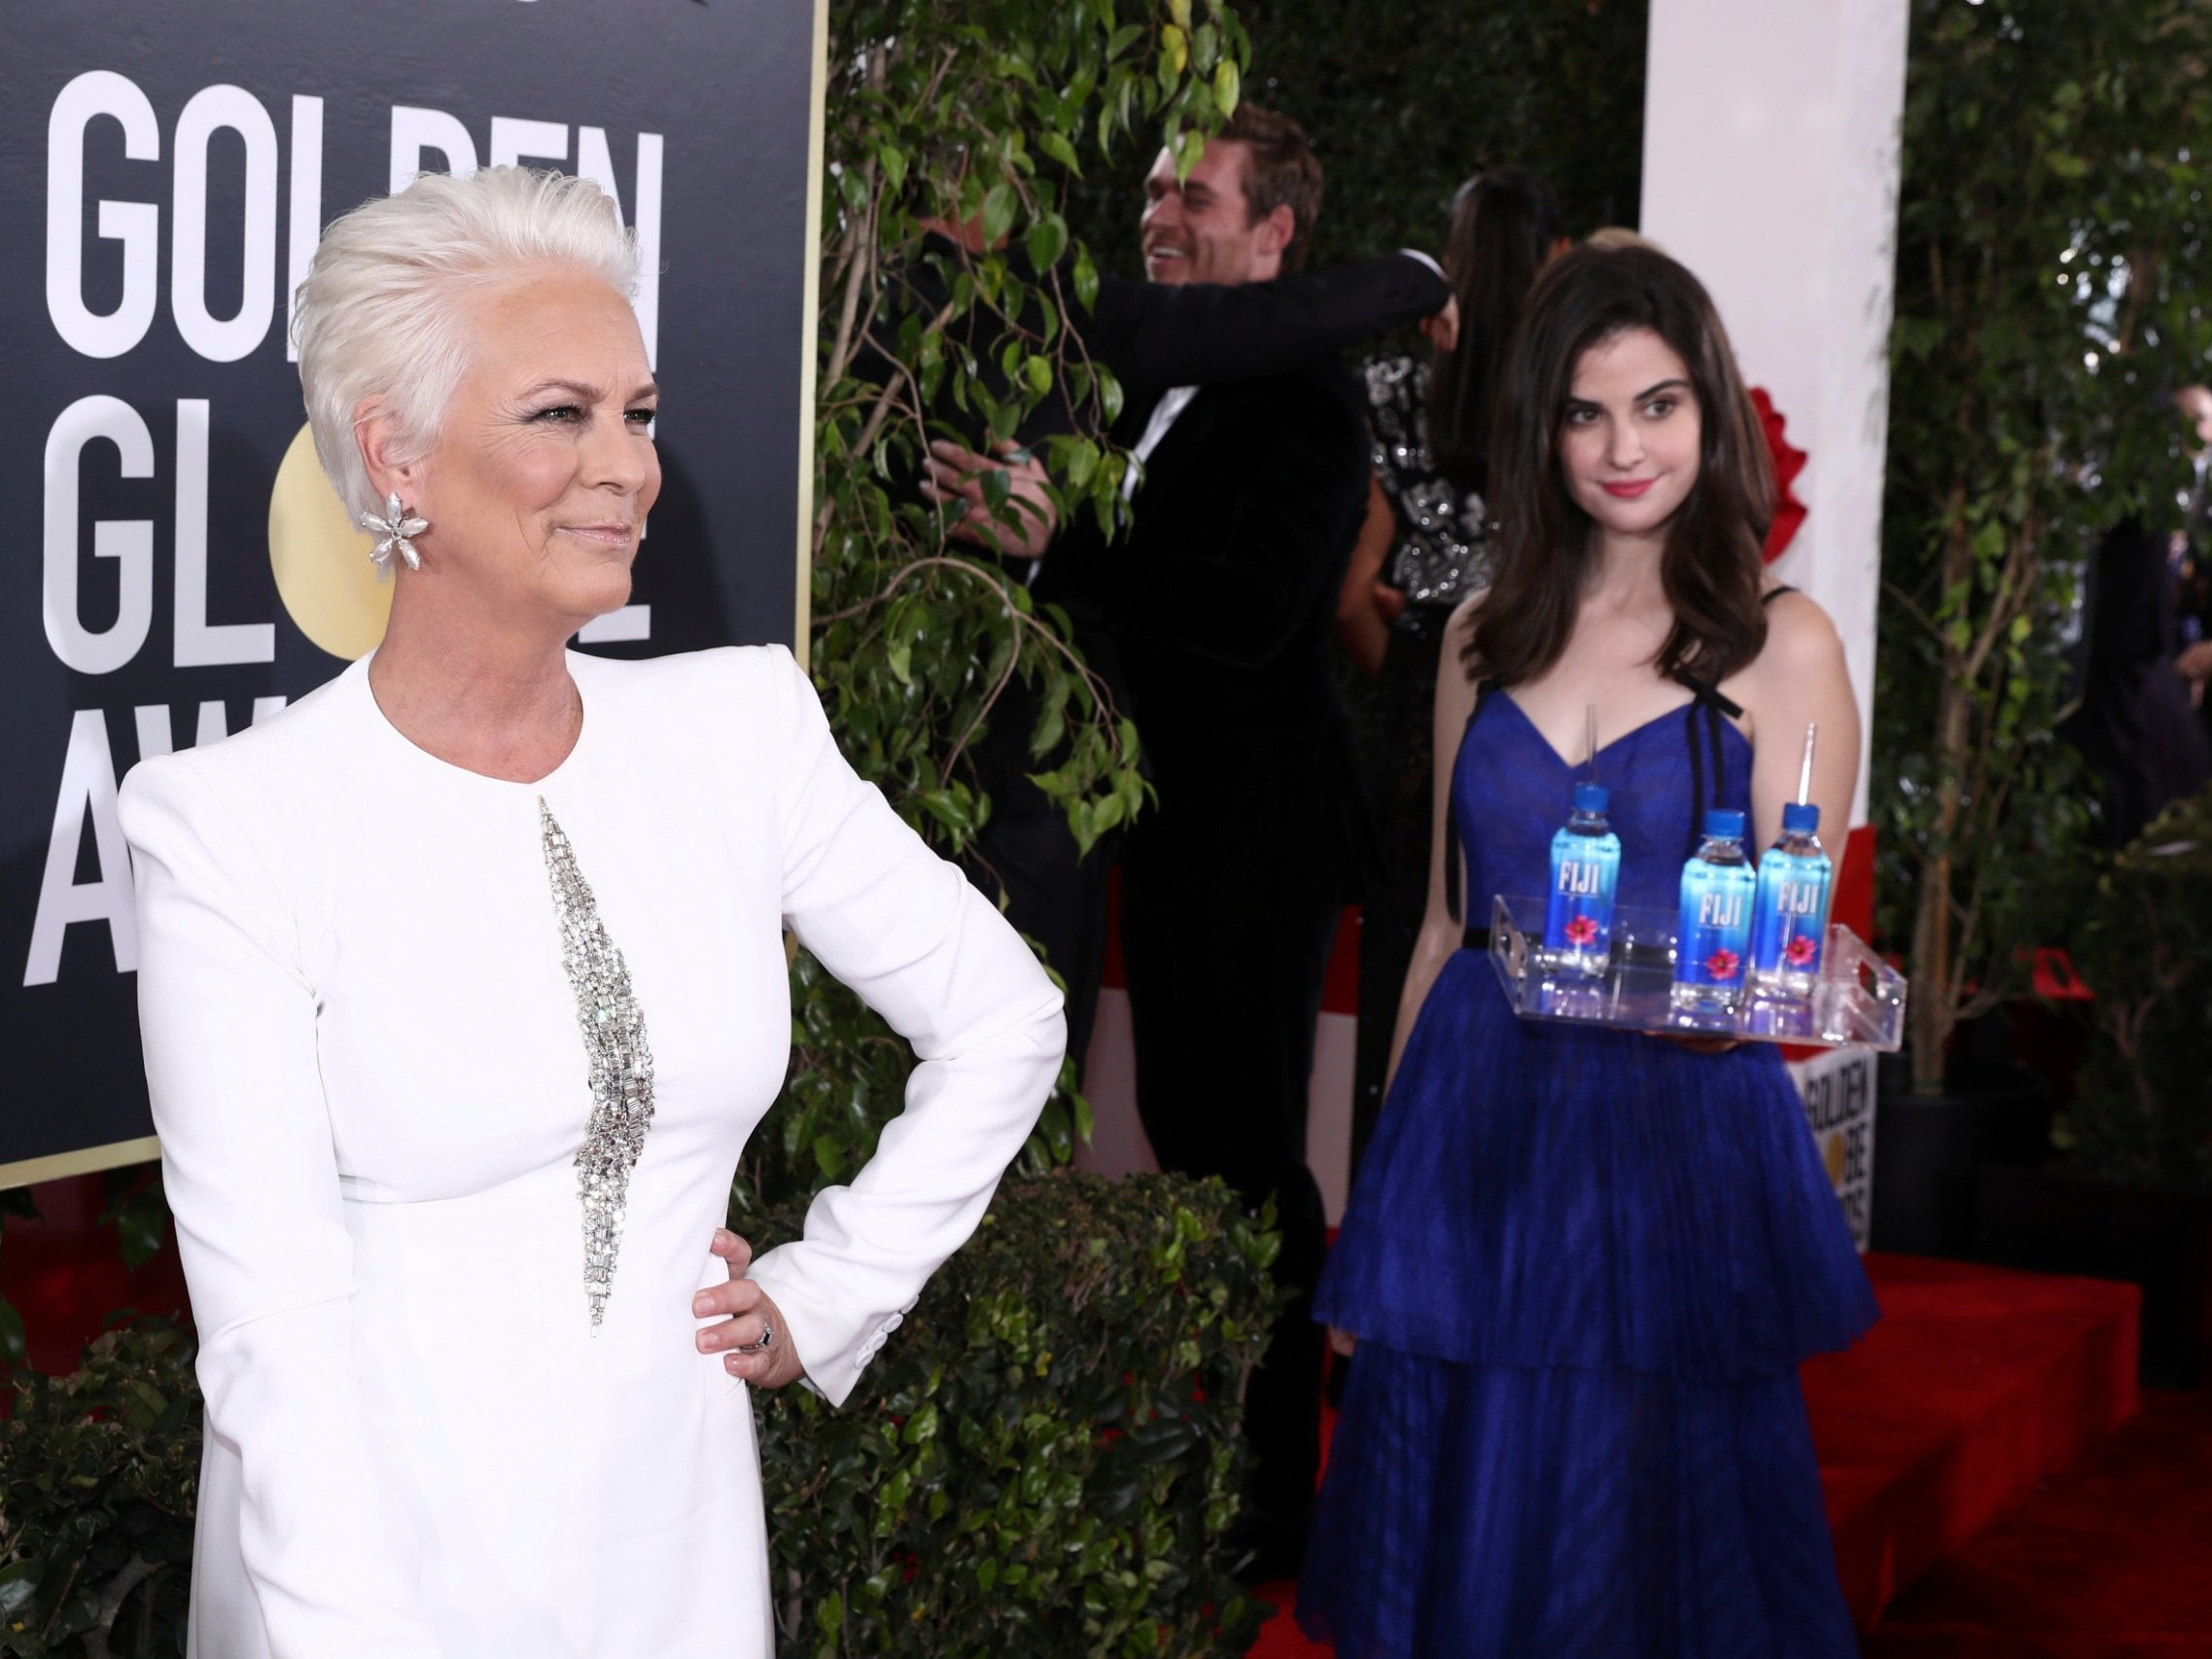 Golden Globes' Fiji Water Girl snags role in US TV show The Bold and the Beautiful